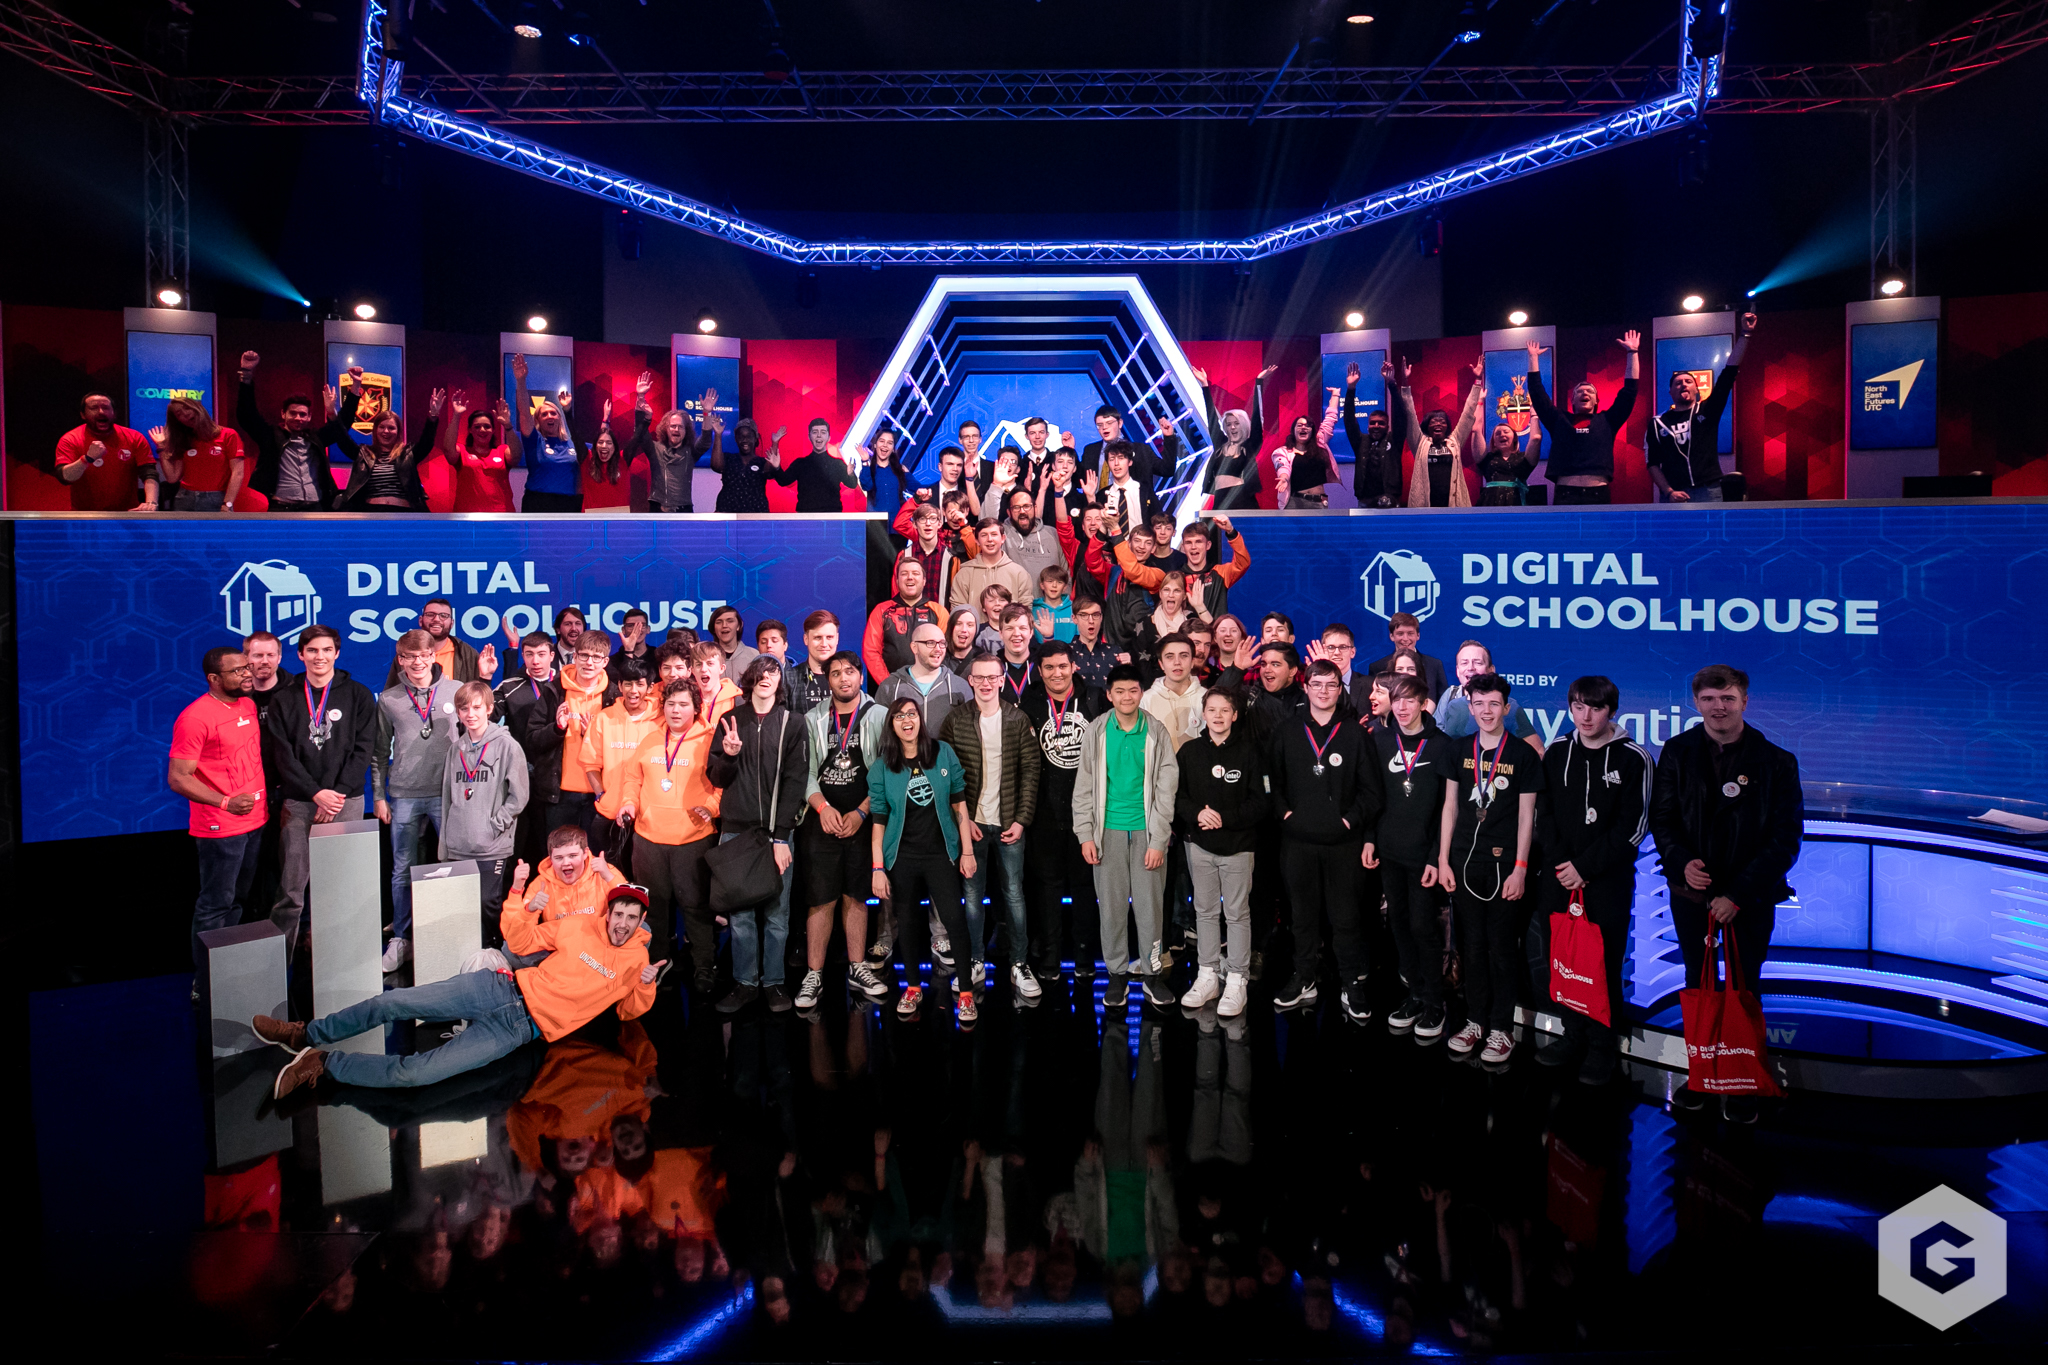 Digital Schoolhouse Finals 2019 all participants from the event in a group photo